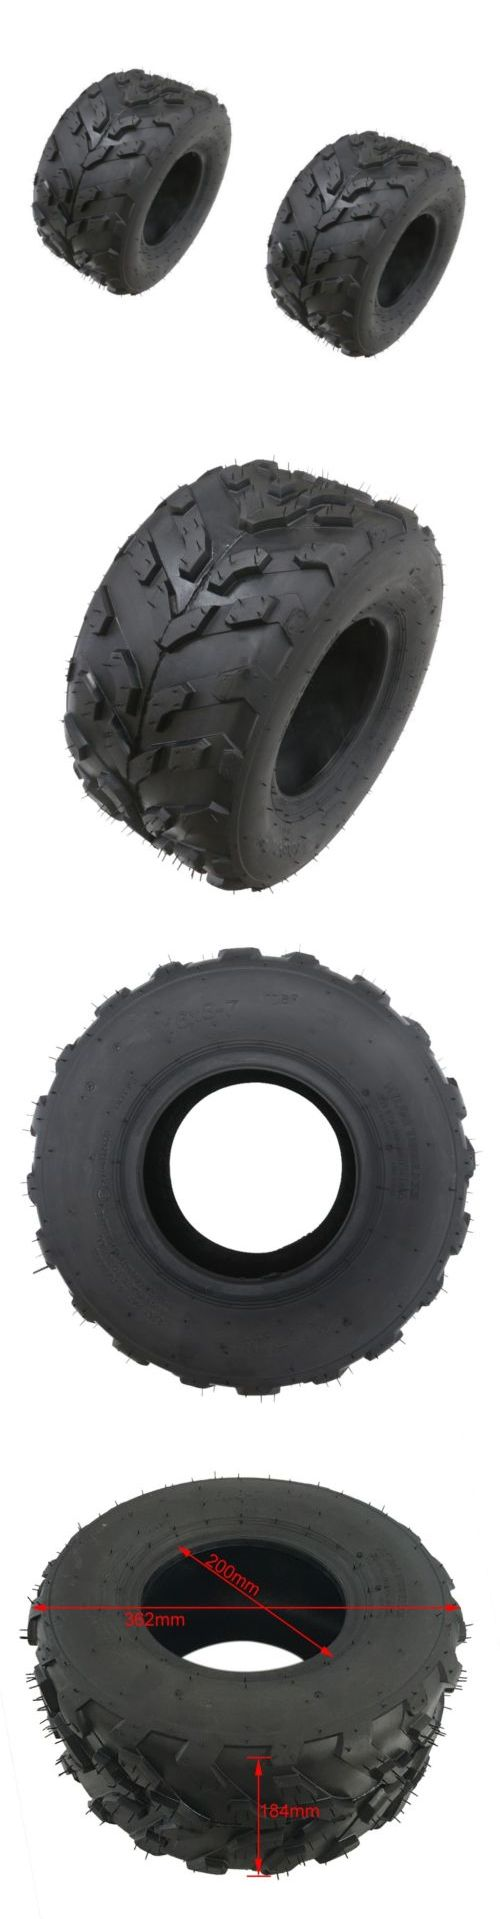 Training wheels 177839 2x tires 16x8 7 7 tyres for atv quad dirt bike